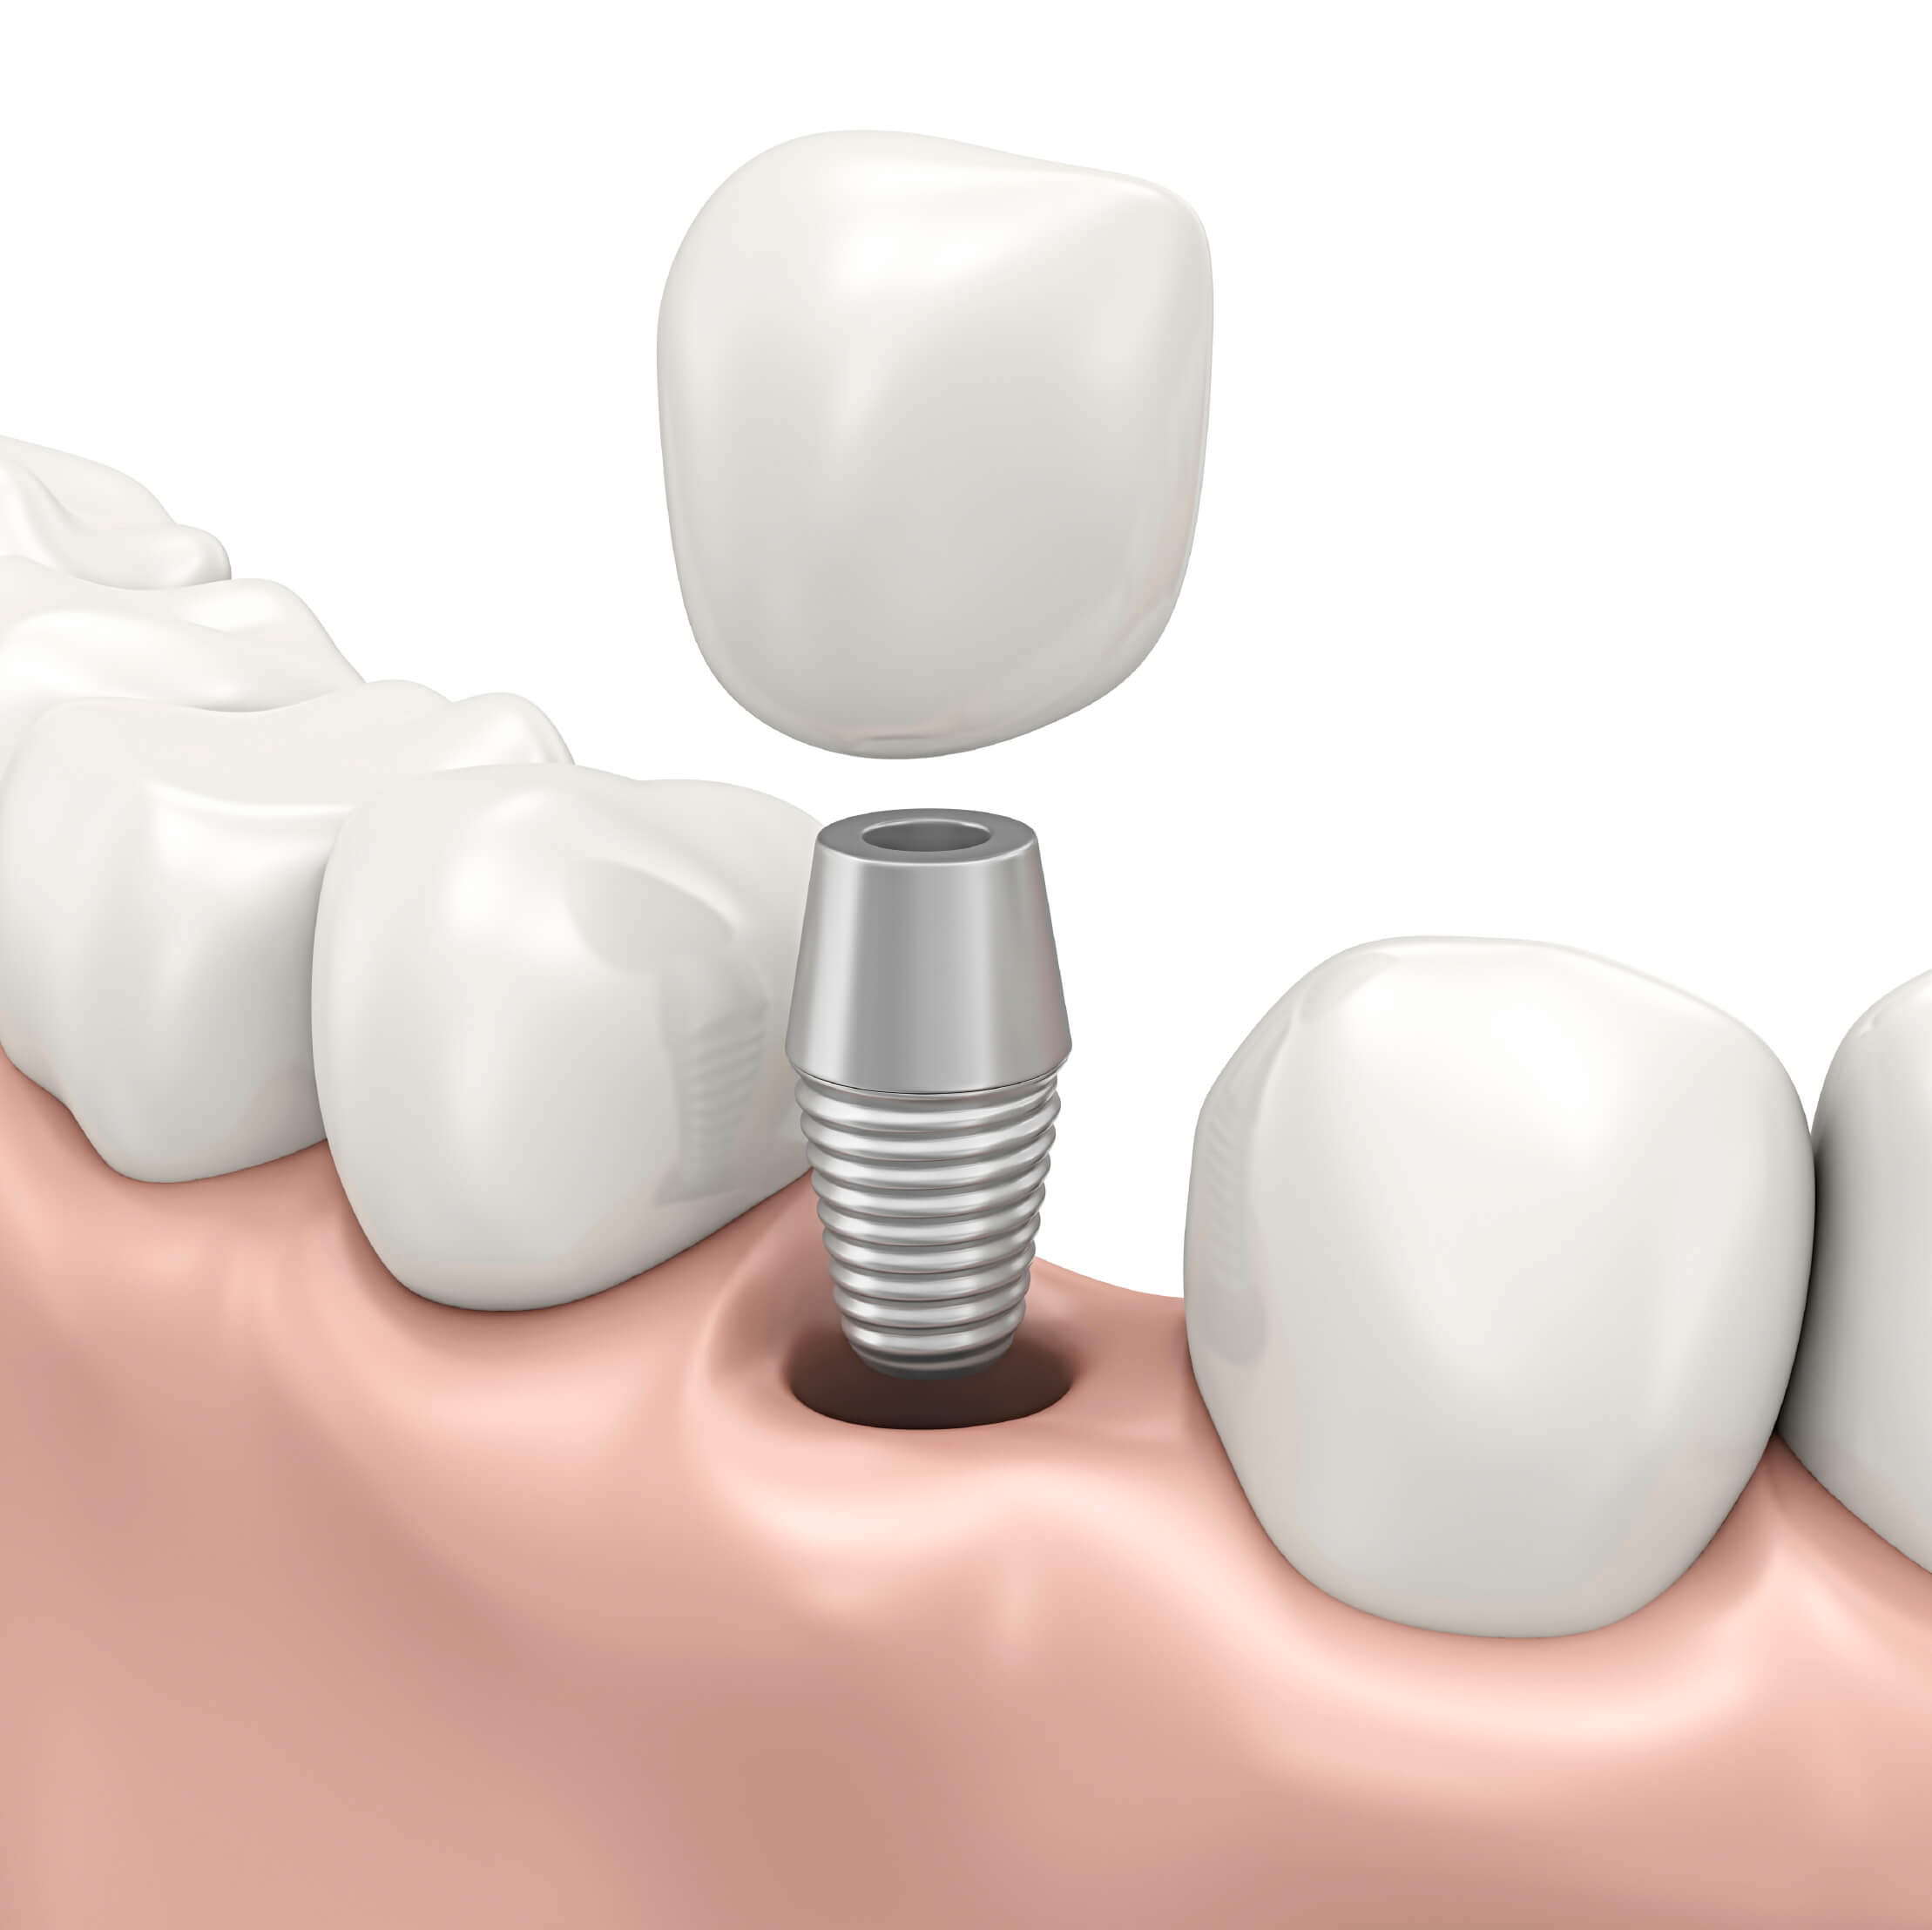 Dental implant restorations in Virginia Beach